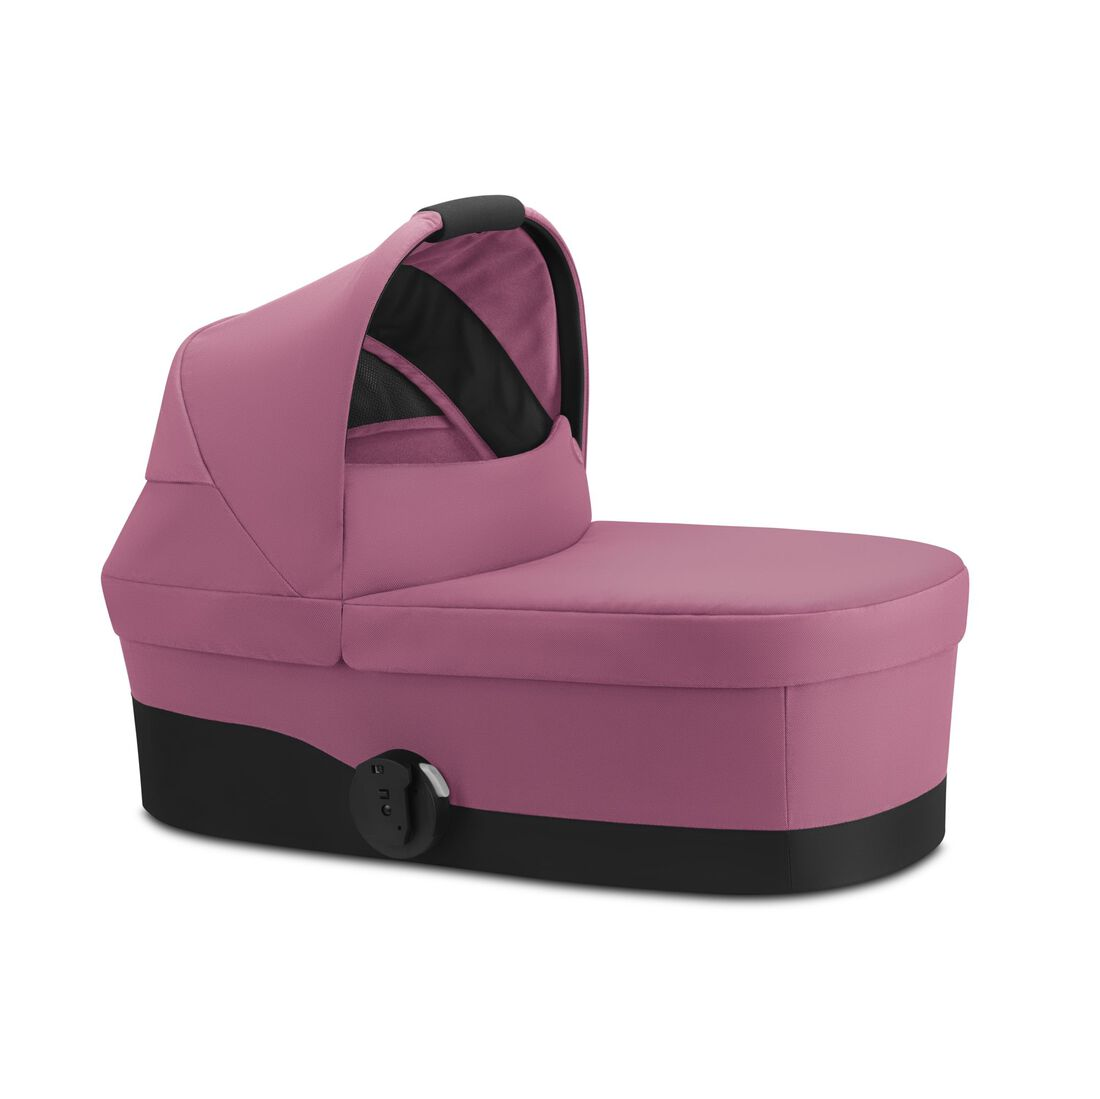 CYBEX Cot S - Magnolia Pink in Magnolia Pink large image number 1